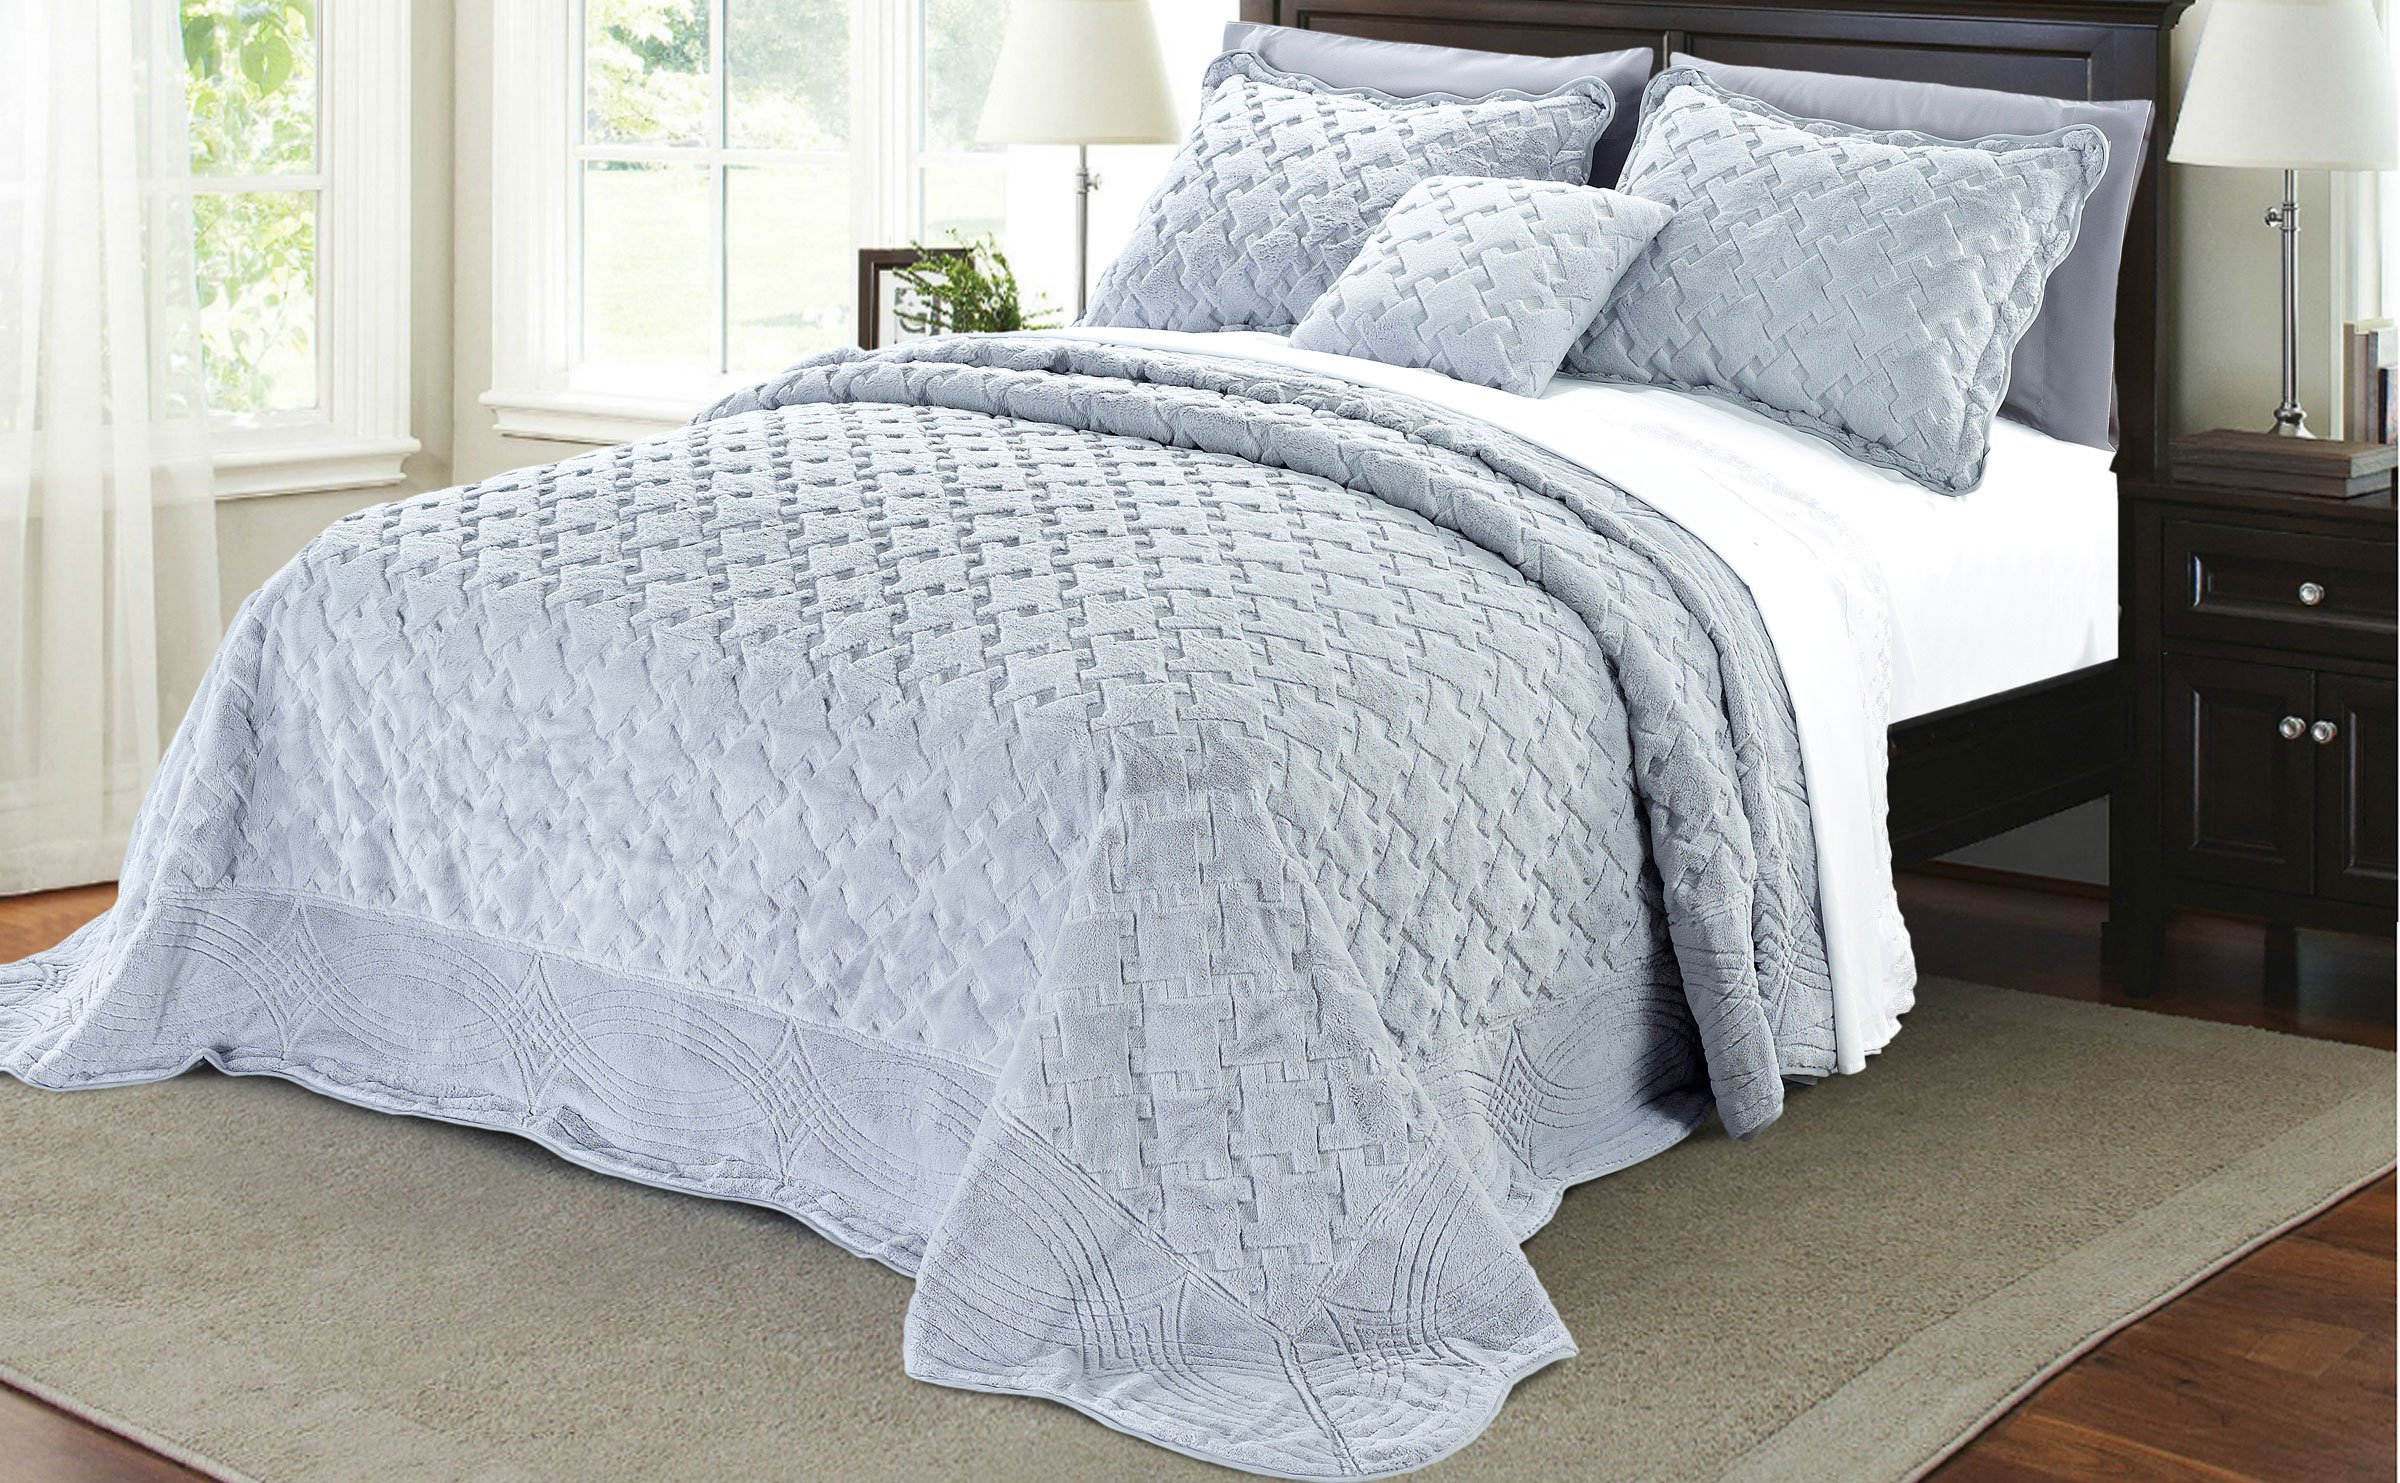 Serenta Faux Fur Quilted Tatami 4 Piece Bedspread Set, King, Grey by Home Soft Things